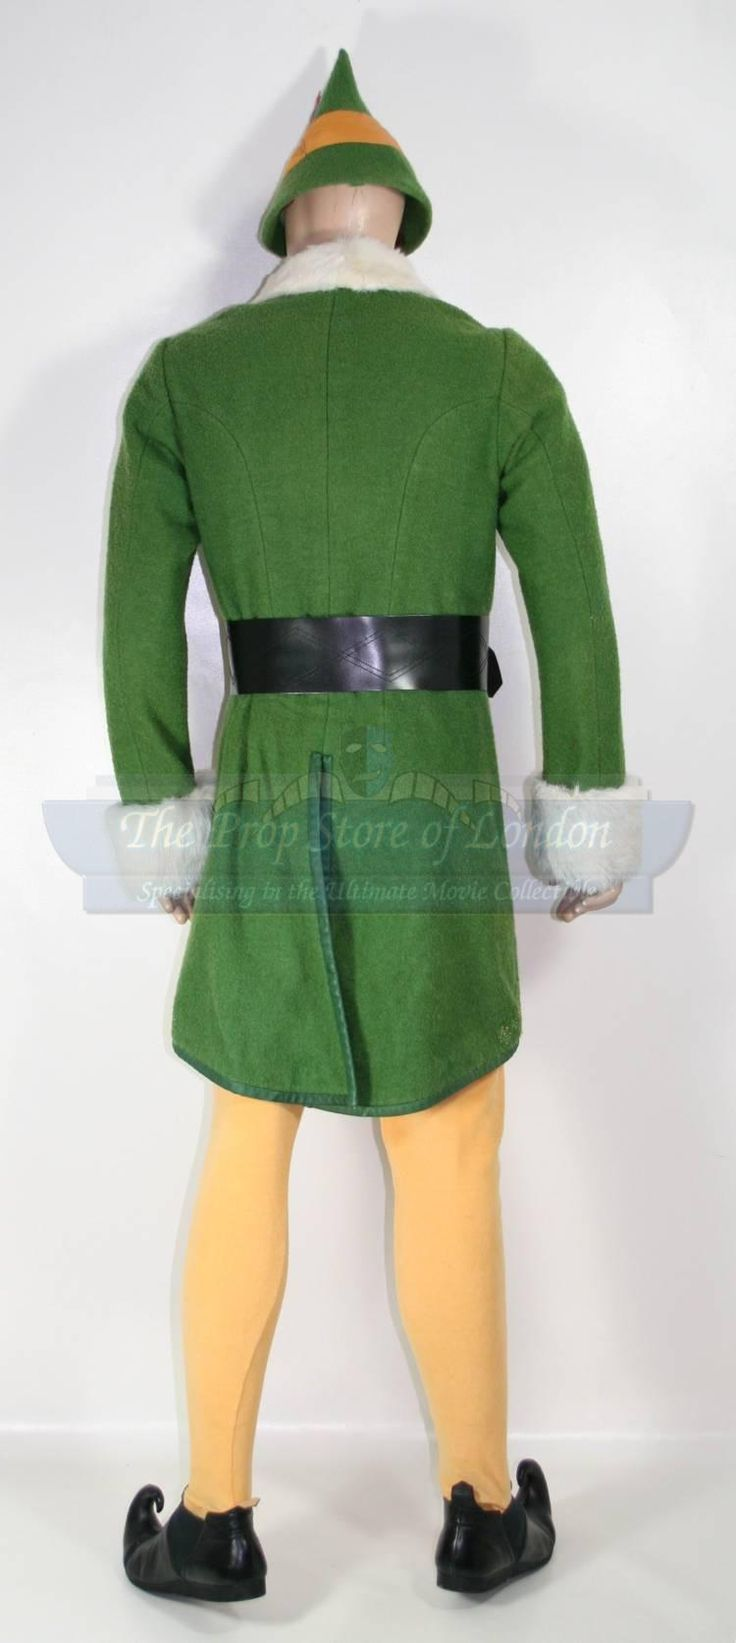 Buddy The Elf (Will Ferrell) Costume |                  Prop Store - Ultimate Movie Collectables